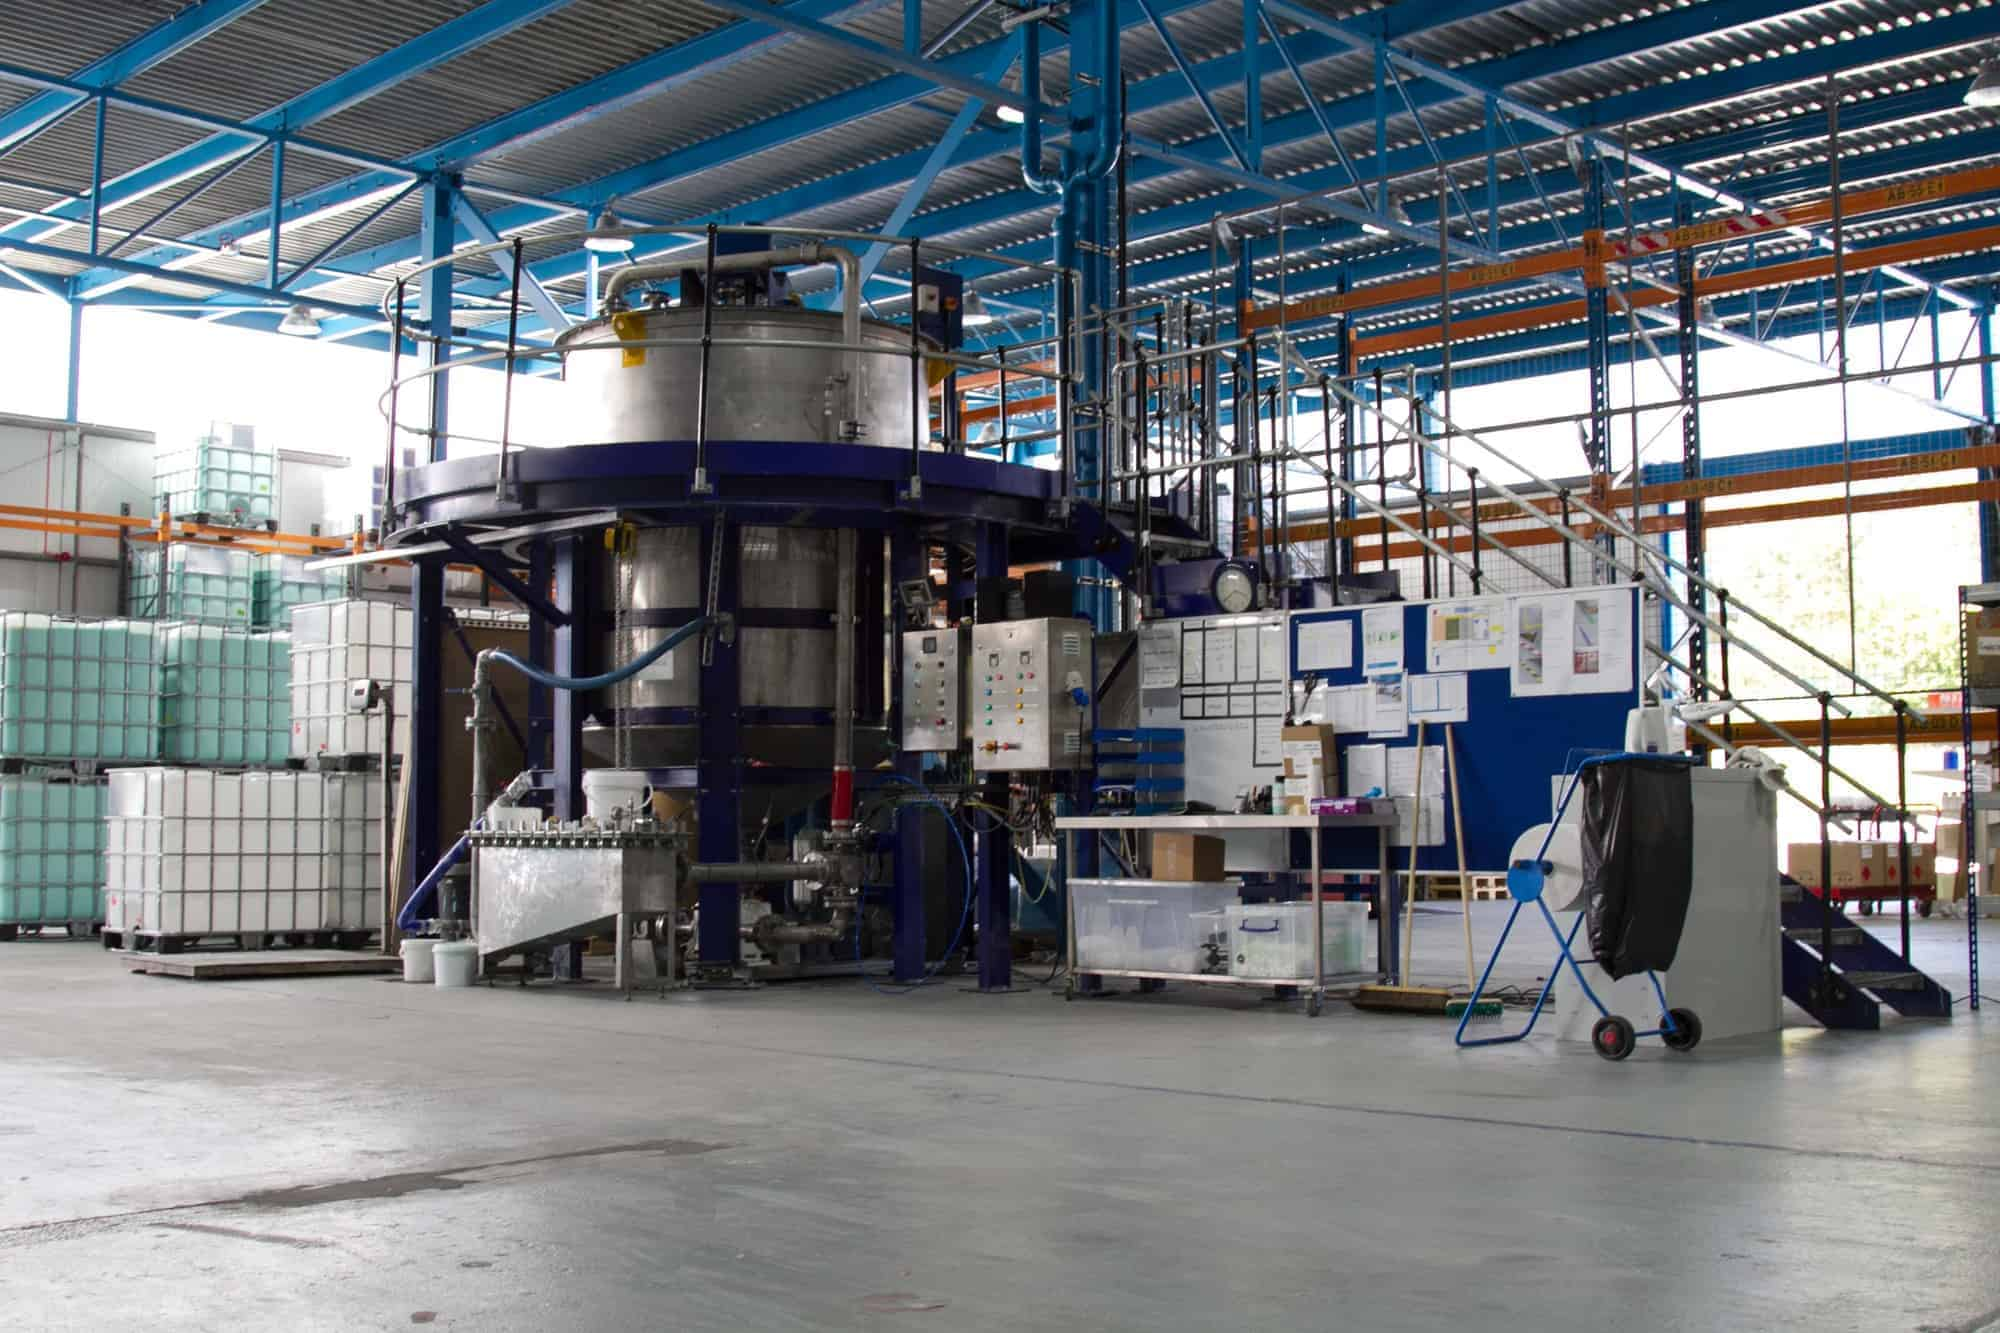 A mixing tank in the ReAgent factory